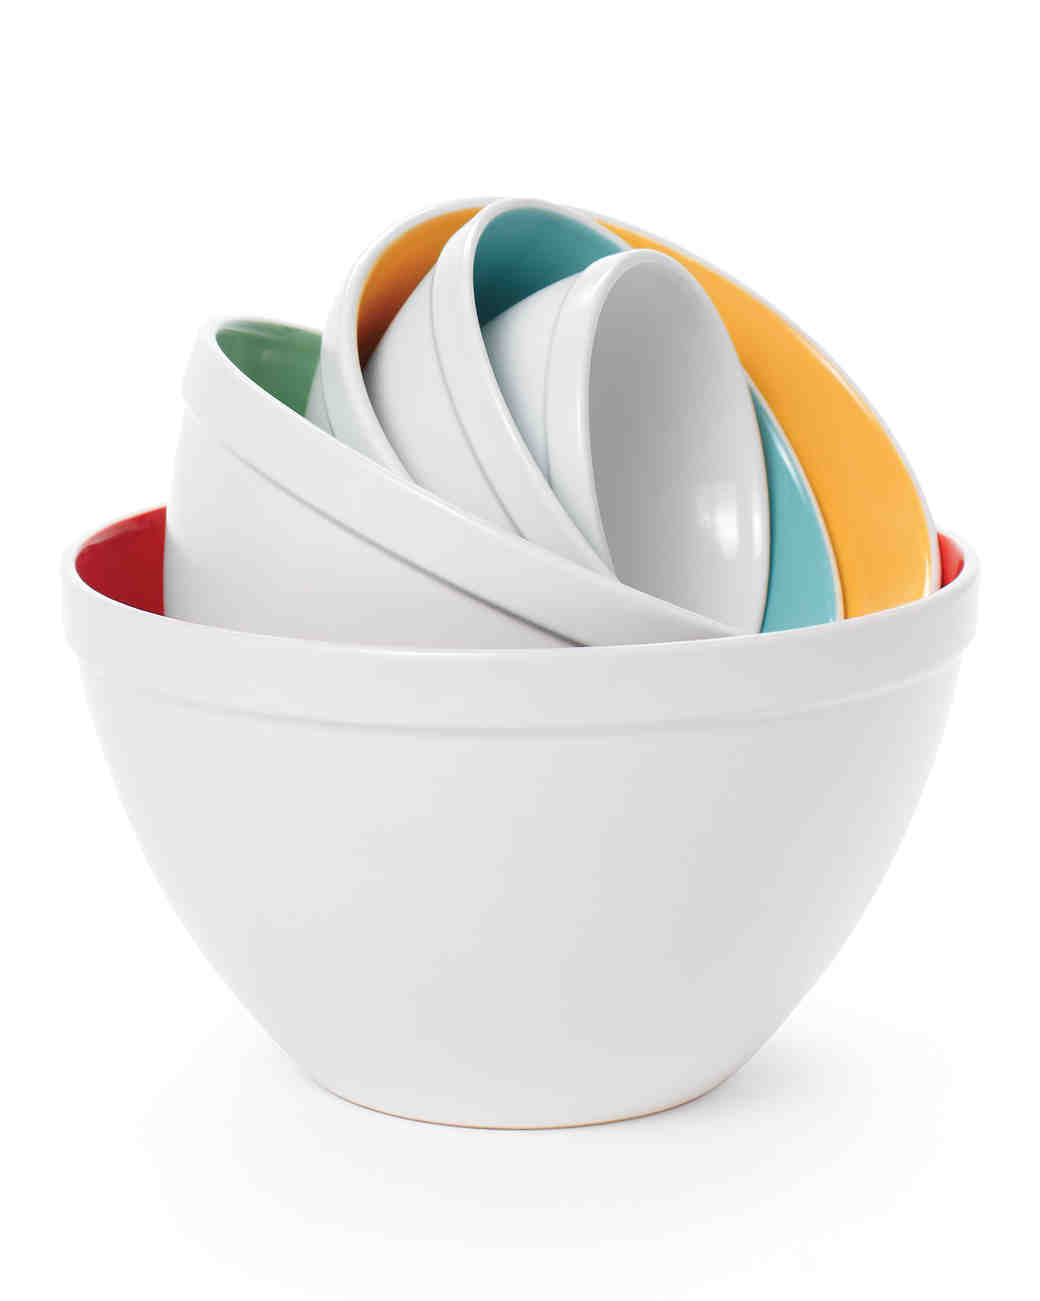 stacked-bowls-288-mwd110609.jpg